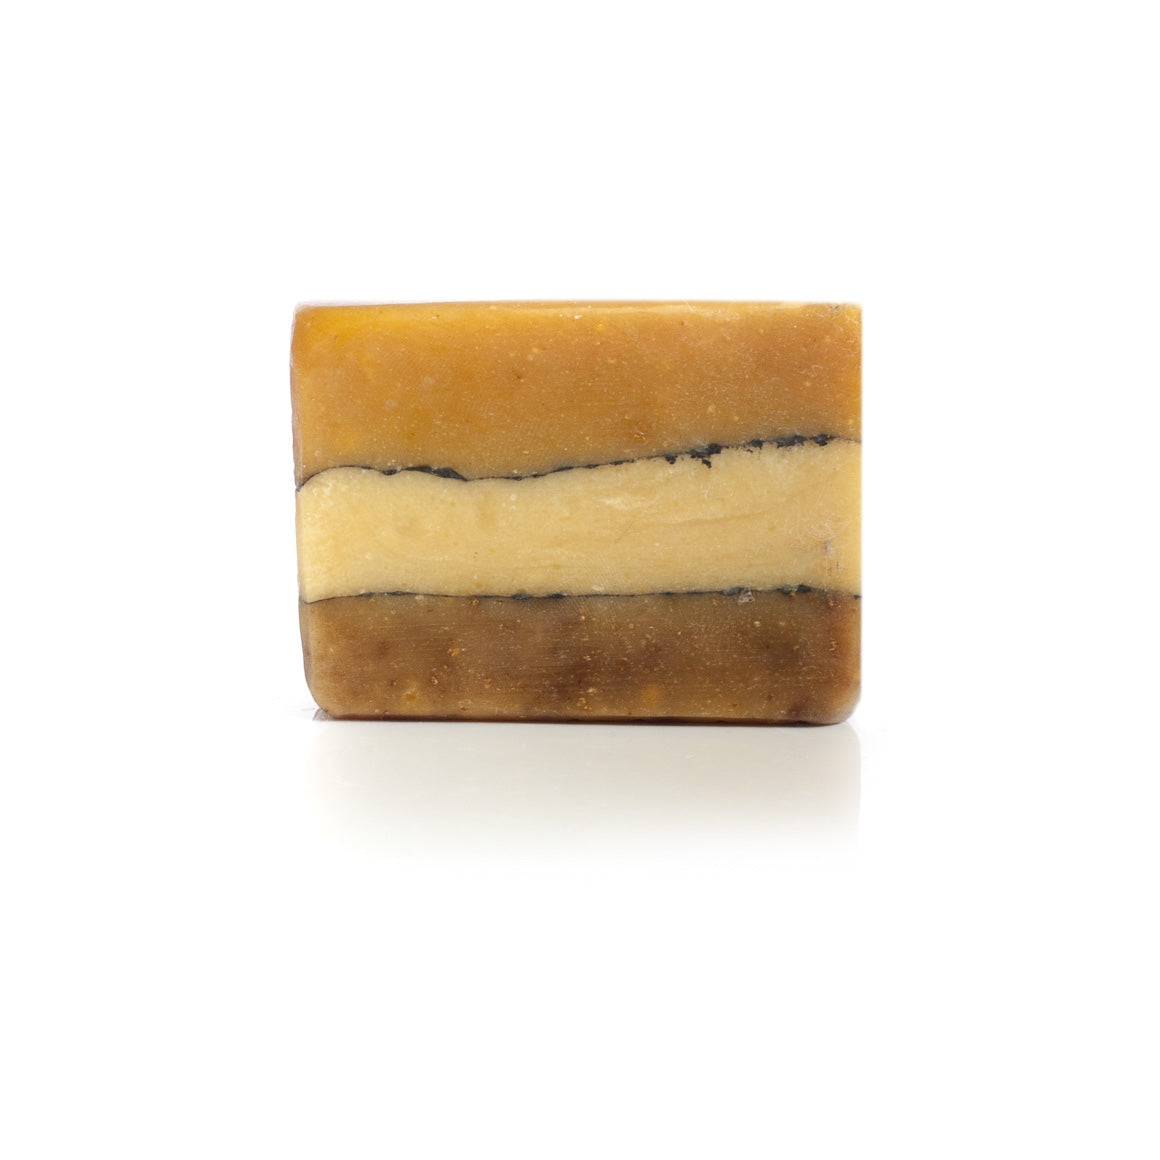 Baressential Soap Bar - The Art of Soap